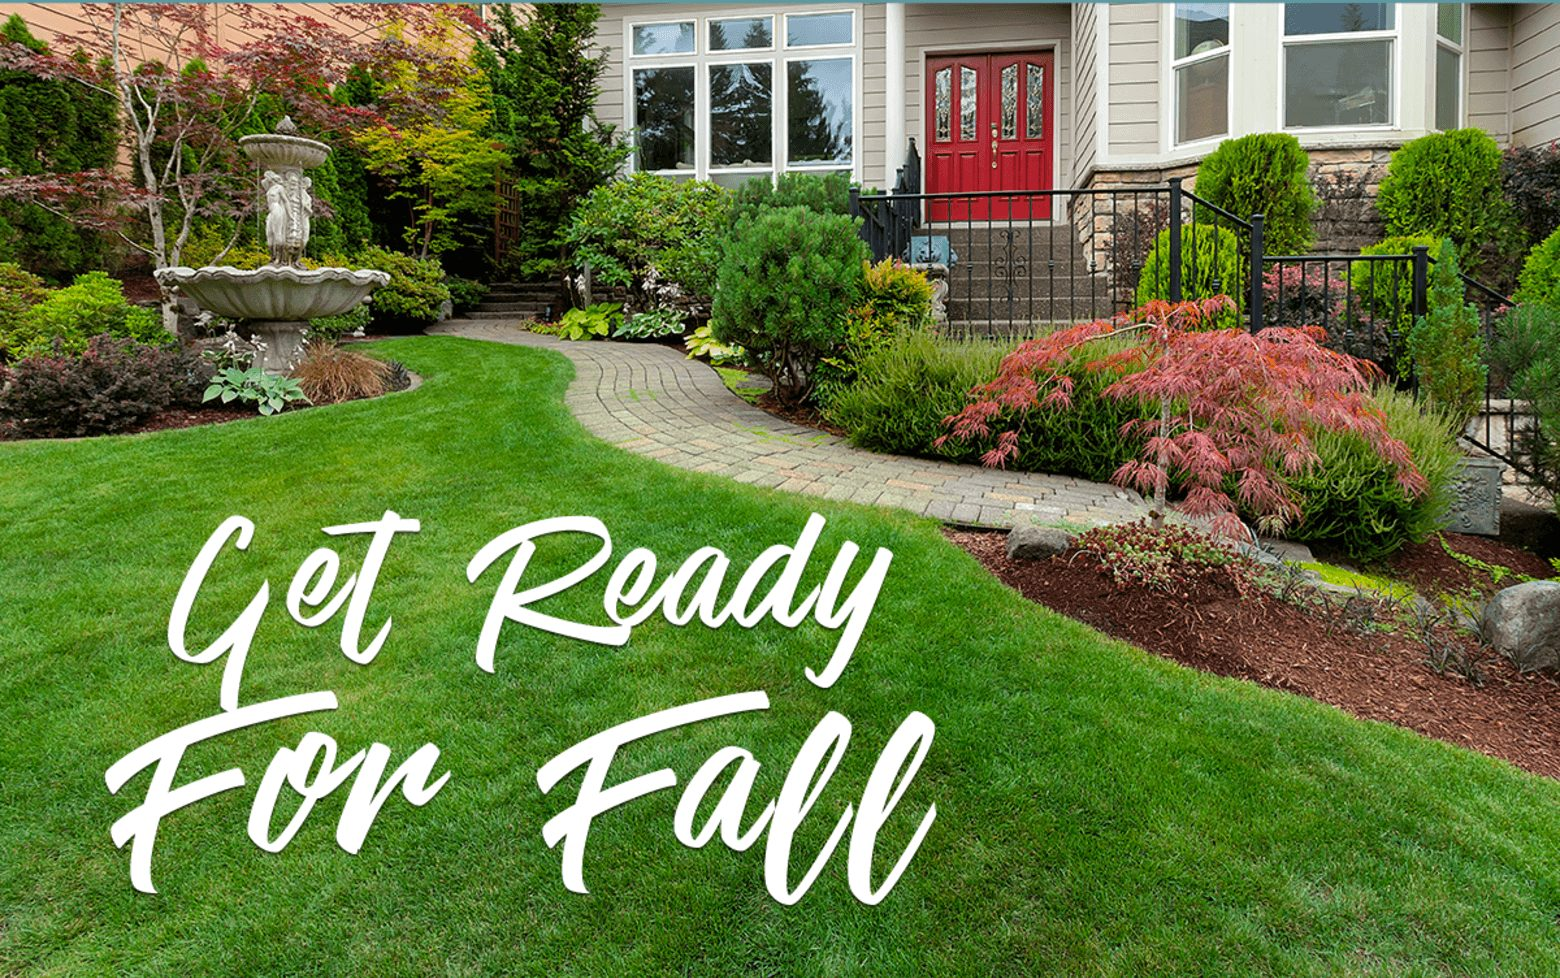 Get your lawn and yard ready for the fall